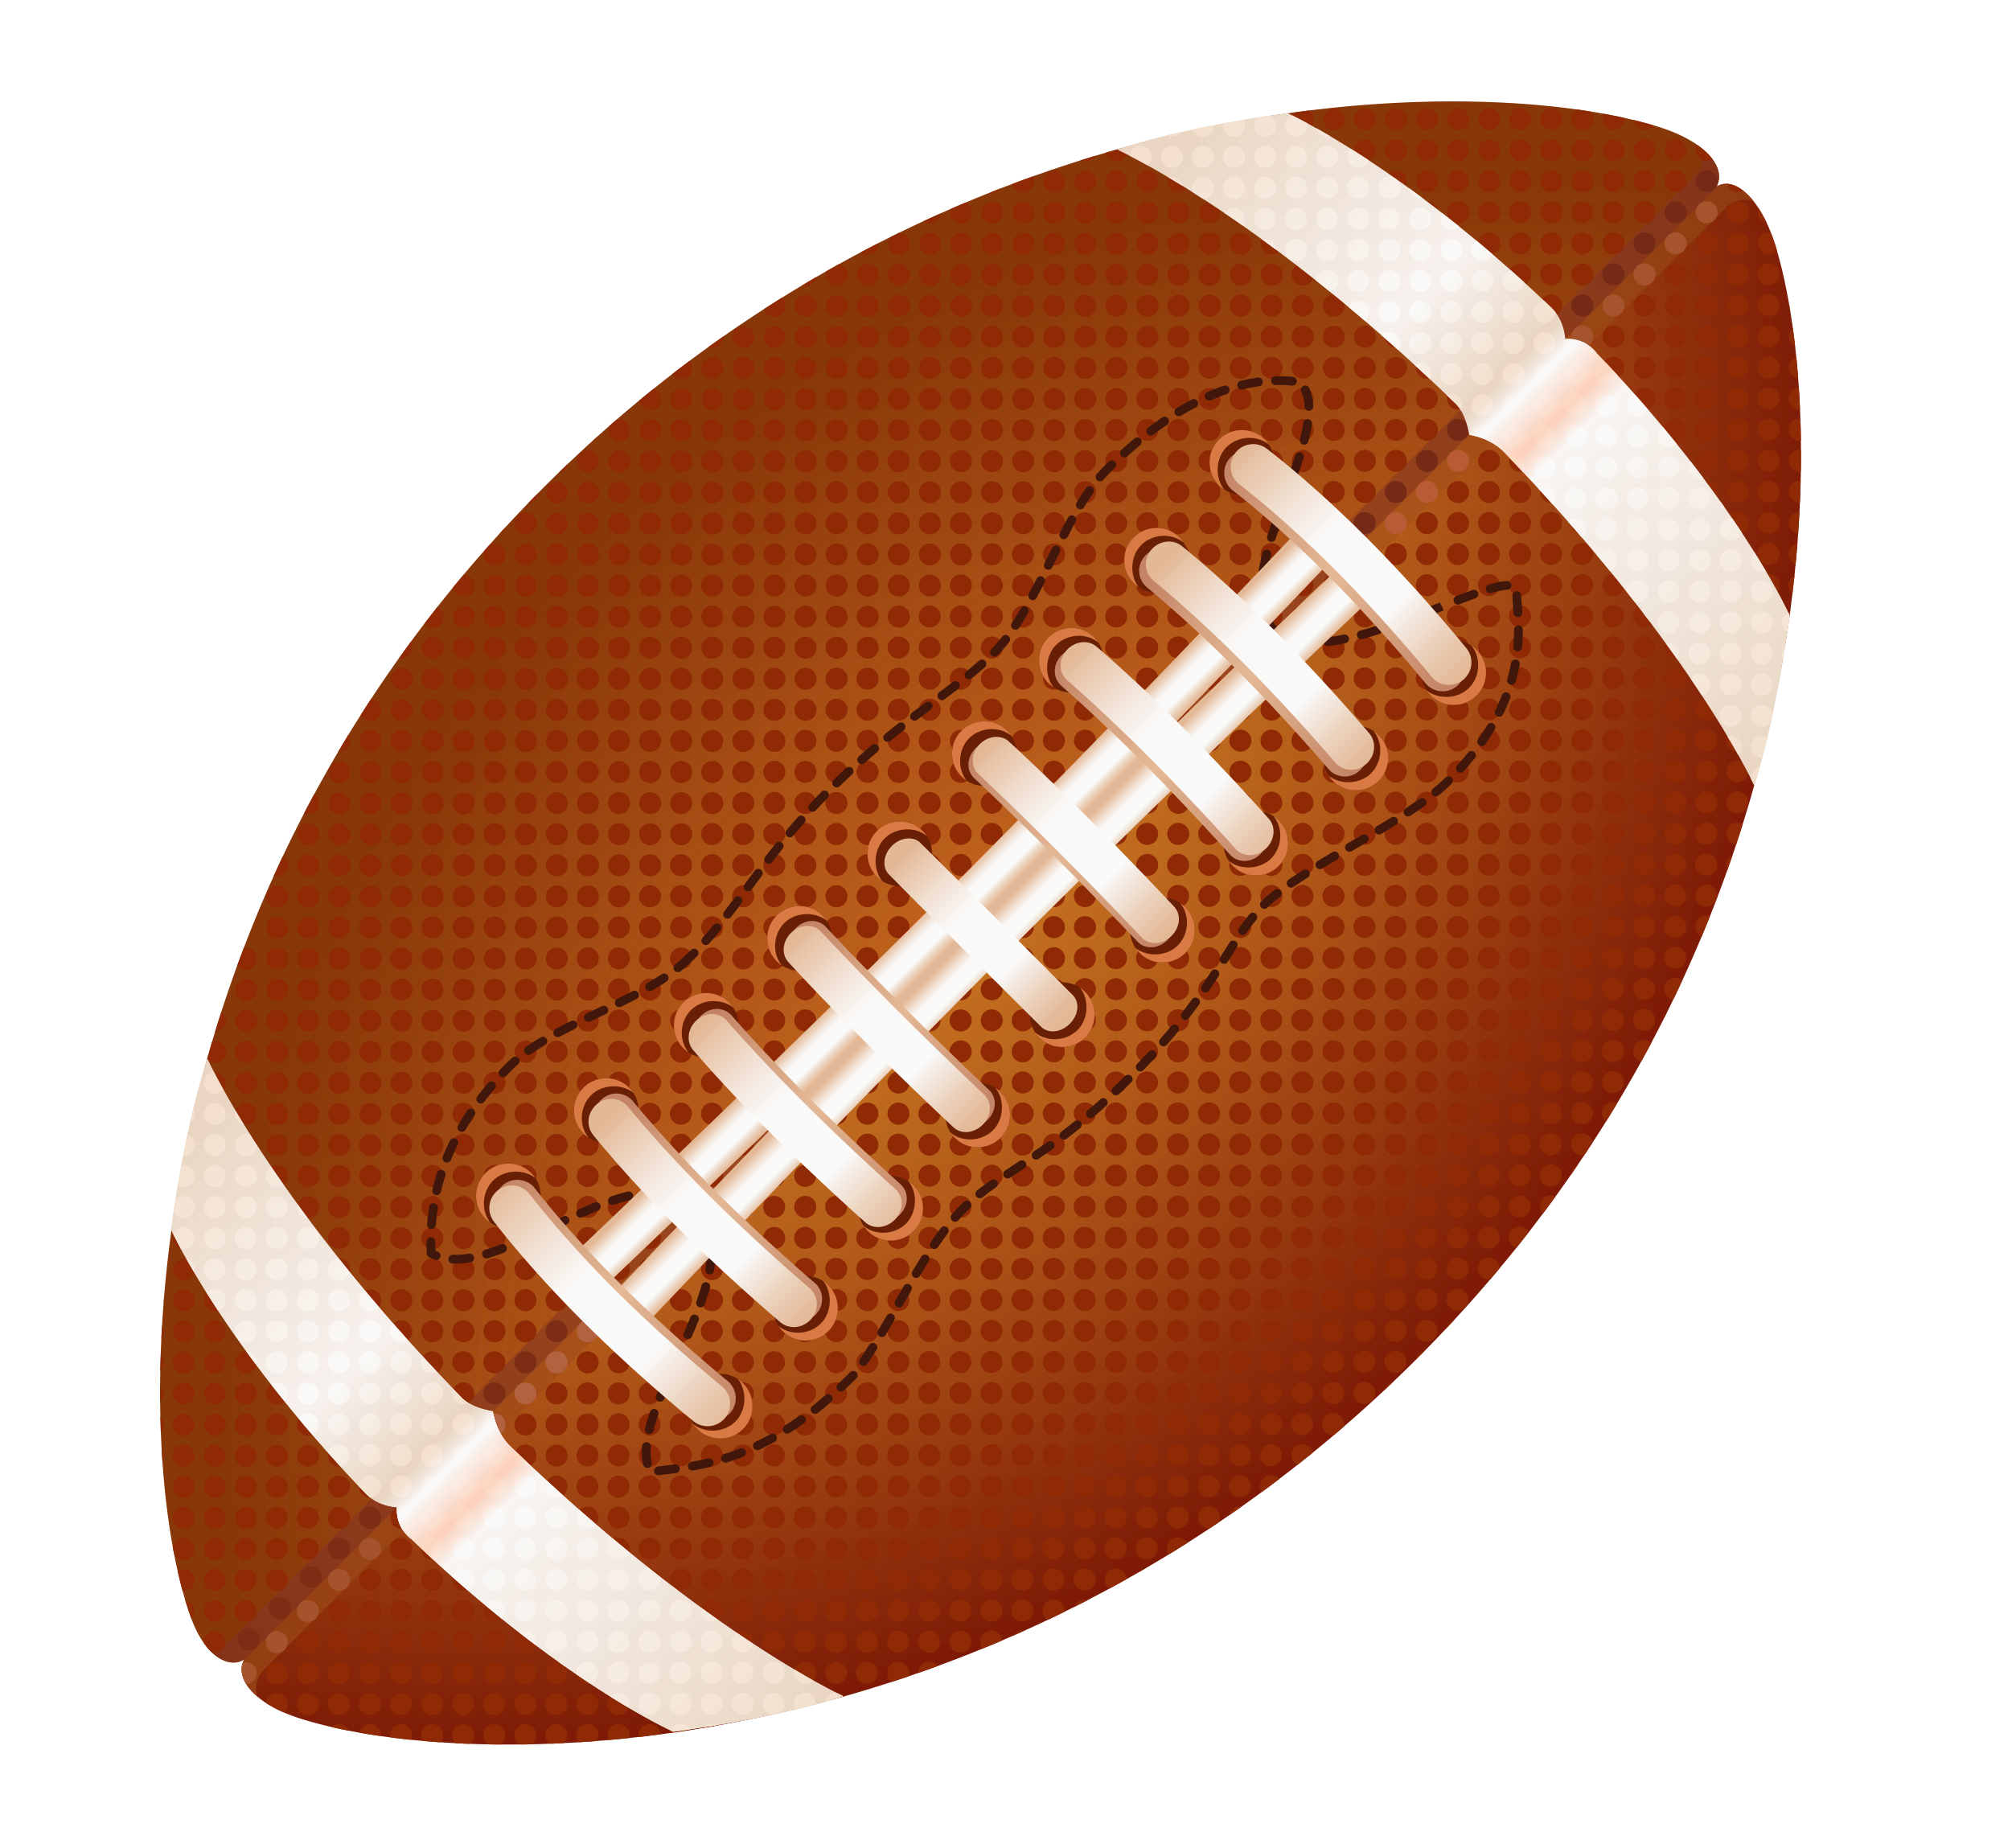 Football clipart pictures svg library download Football clip art printable free clipart images 2 - Cliparting.com svg library download